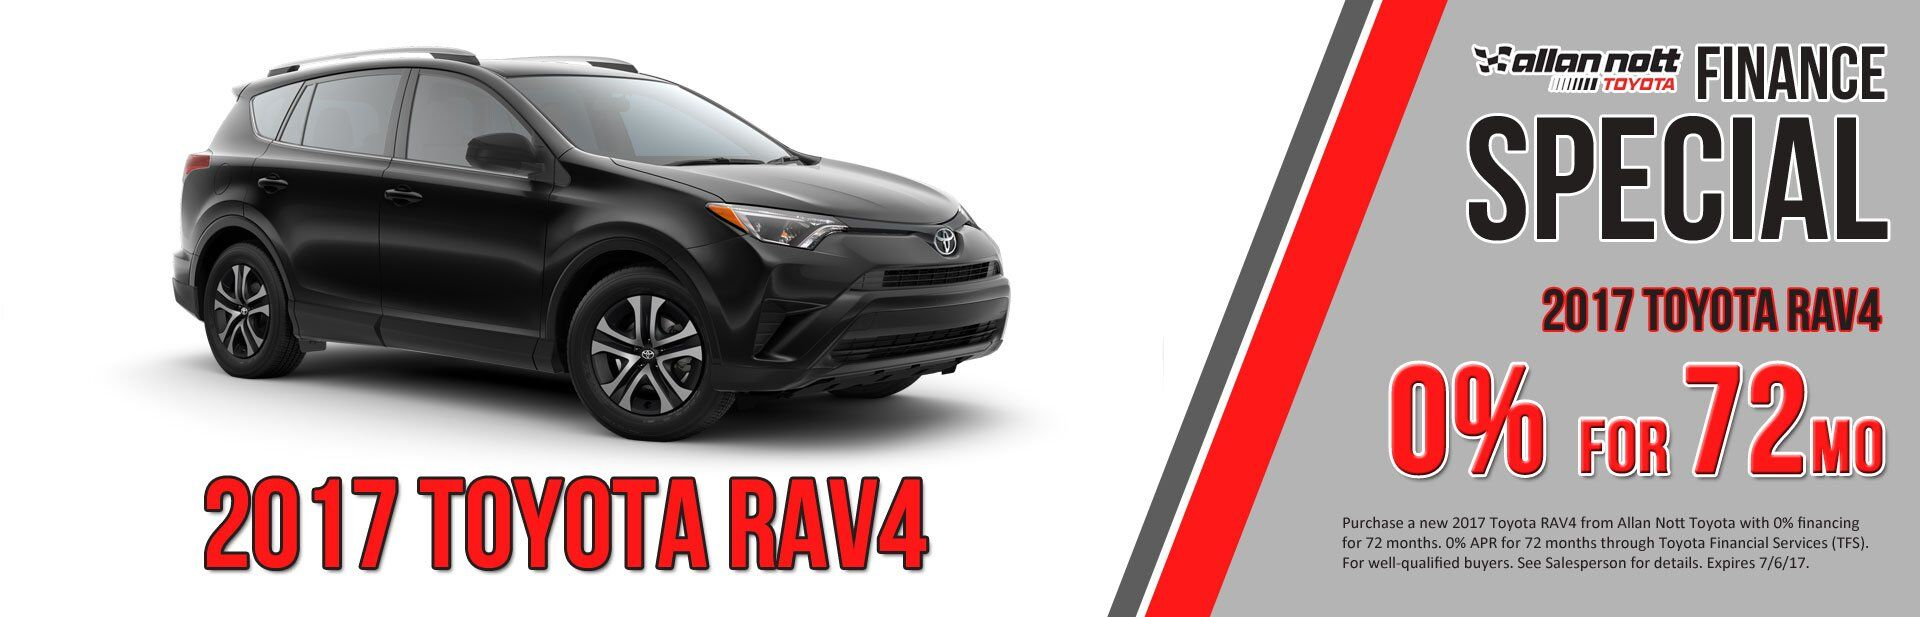 0% for up to 72 Months on 2017 Toyota RAV4s!